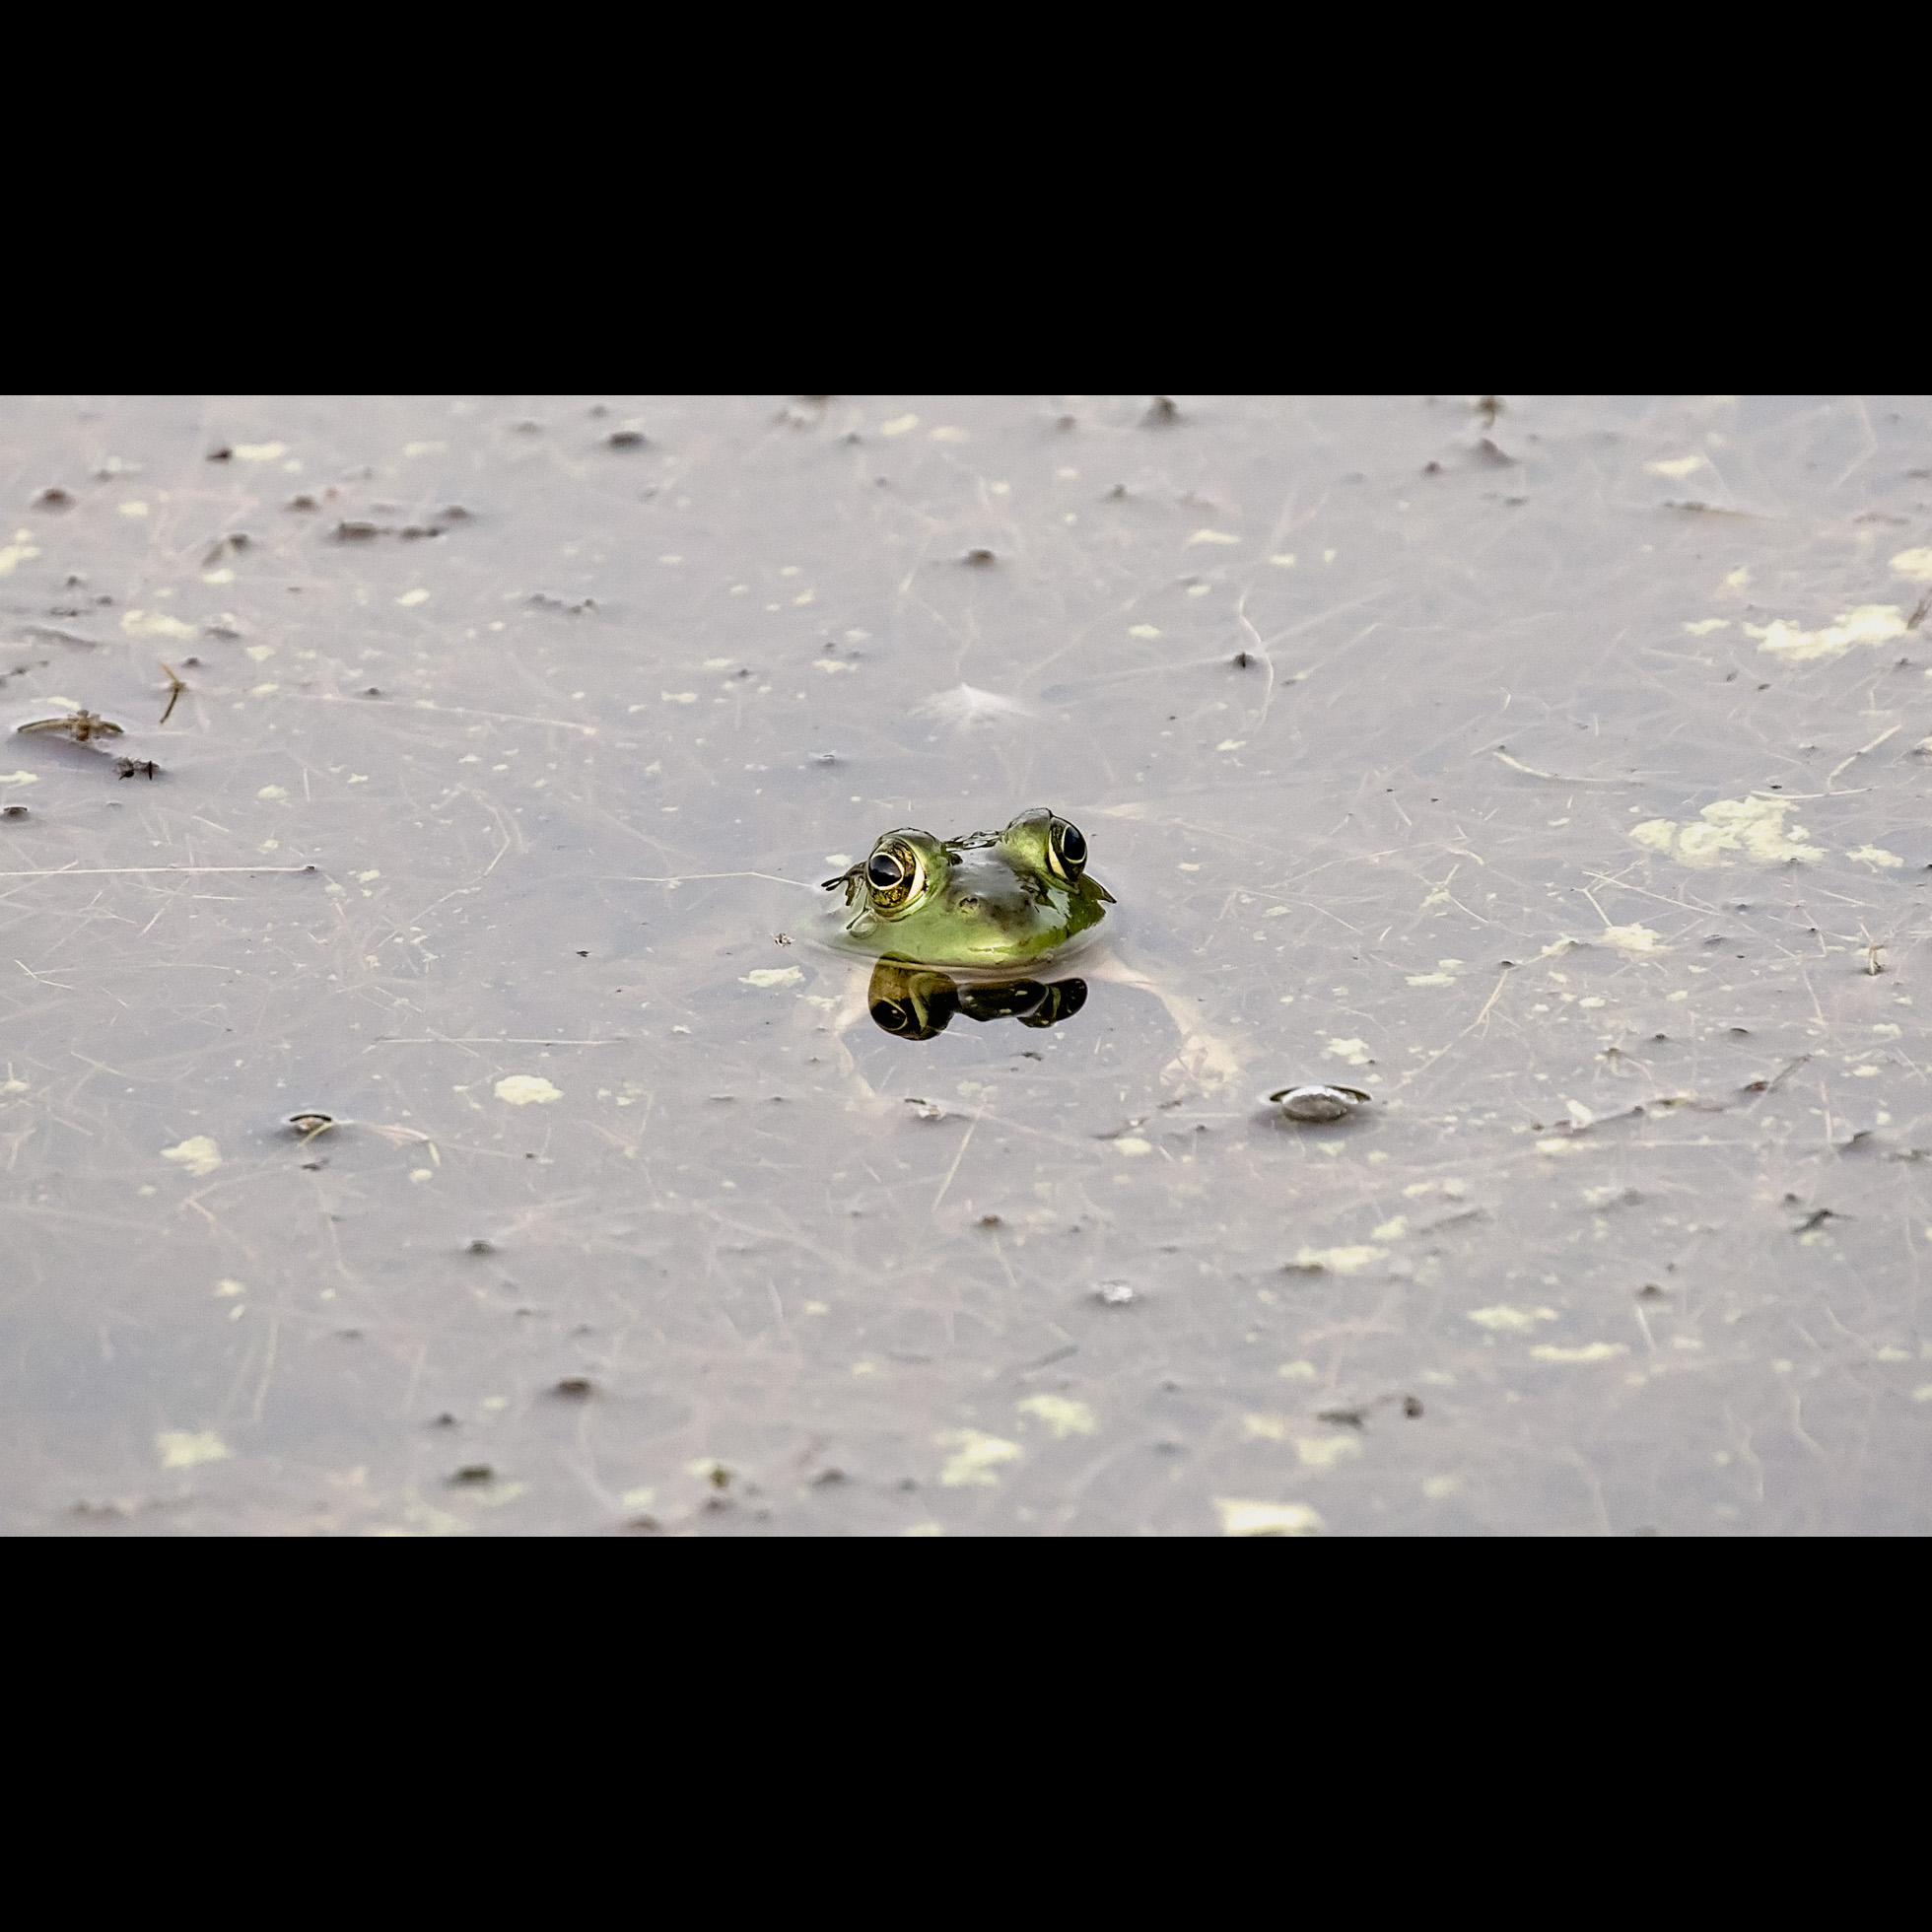 9.3 ICE POND GREEN FROG